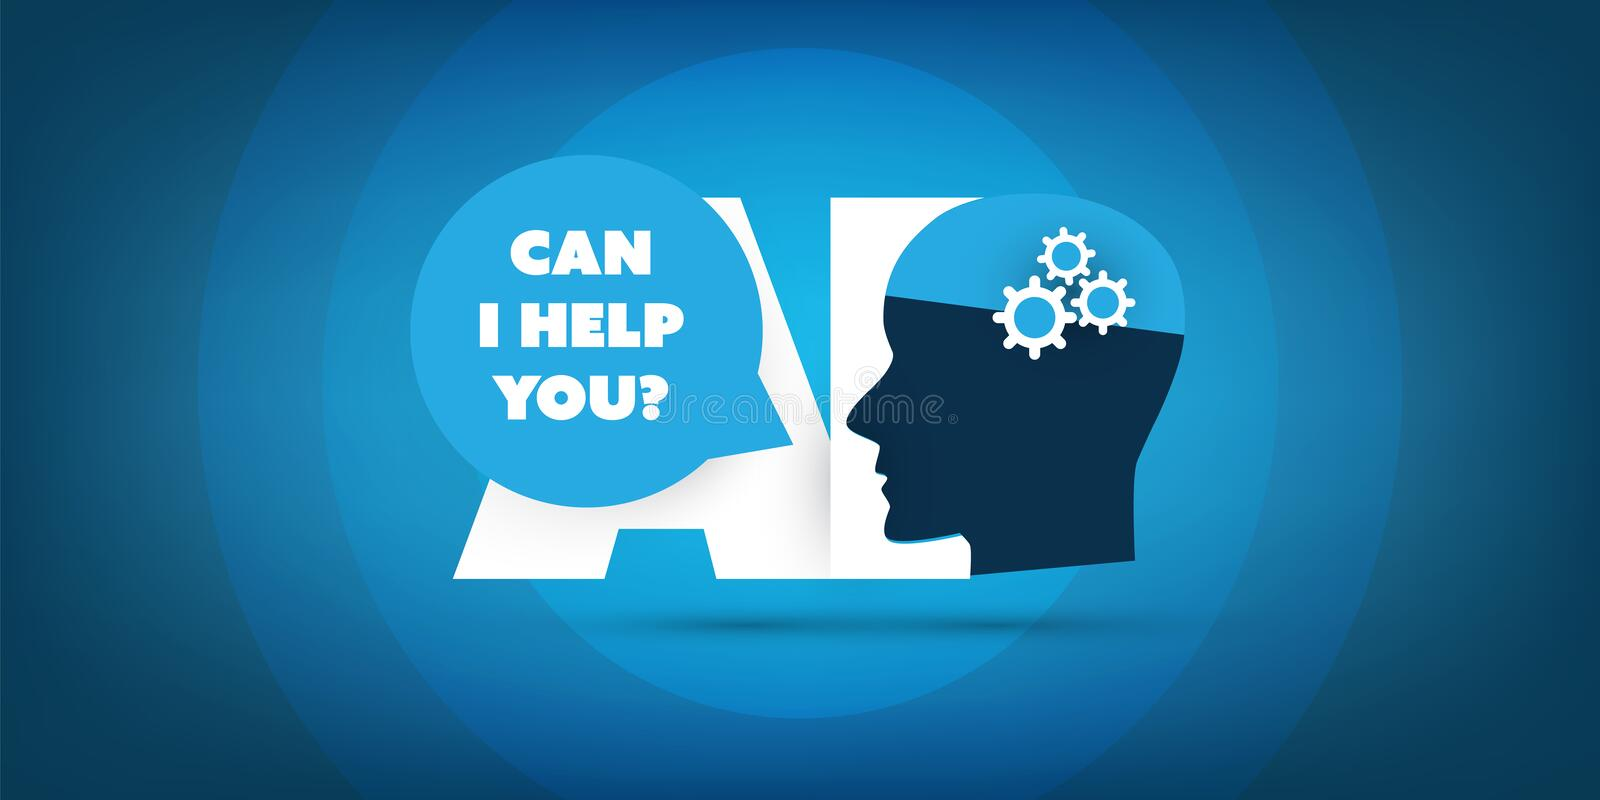 Can I Help You? - AI Assistance, Automated Support, Digital Aid, Deep Learning and Future Technology Concept Design. Abstract Colorful Machine Learning royalty free illustration